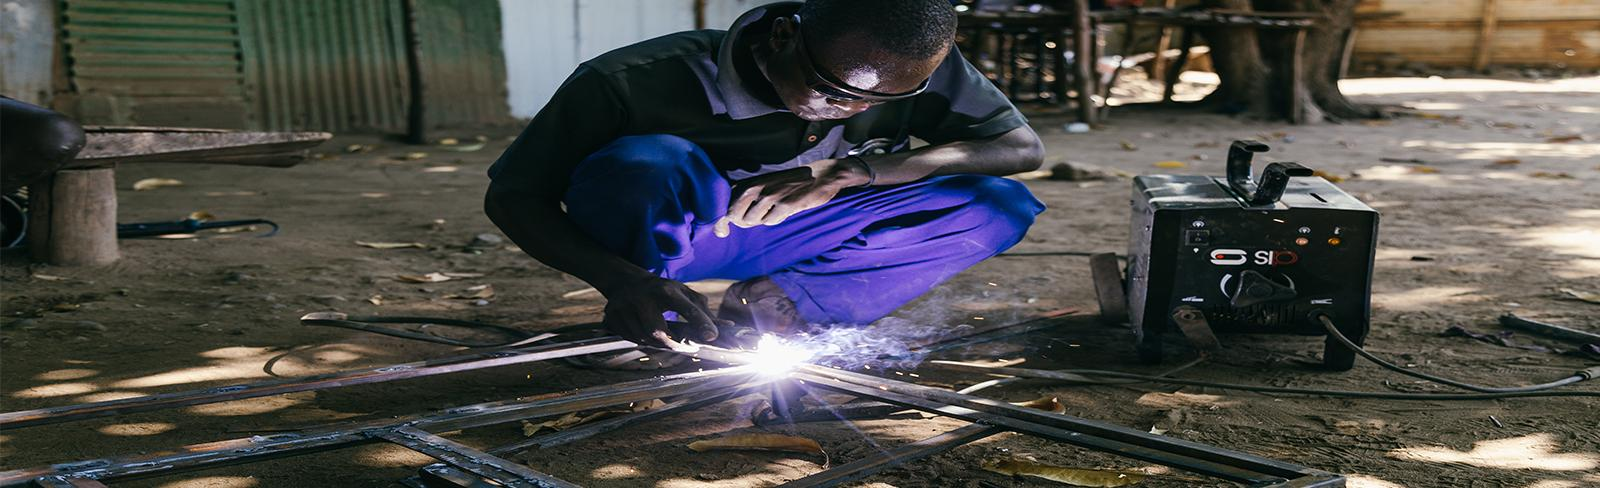 Welder, Man, Kenya